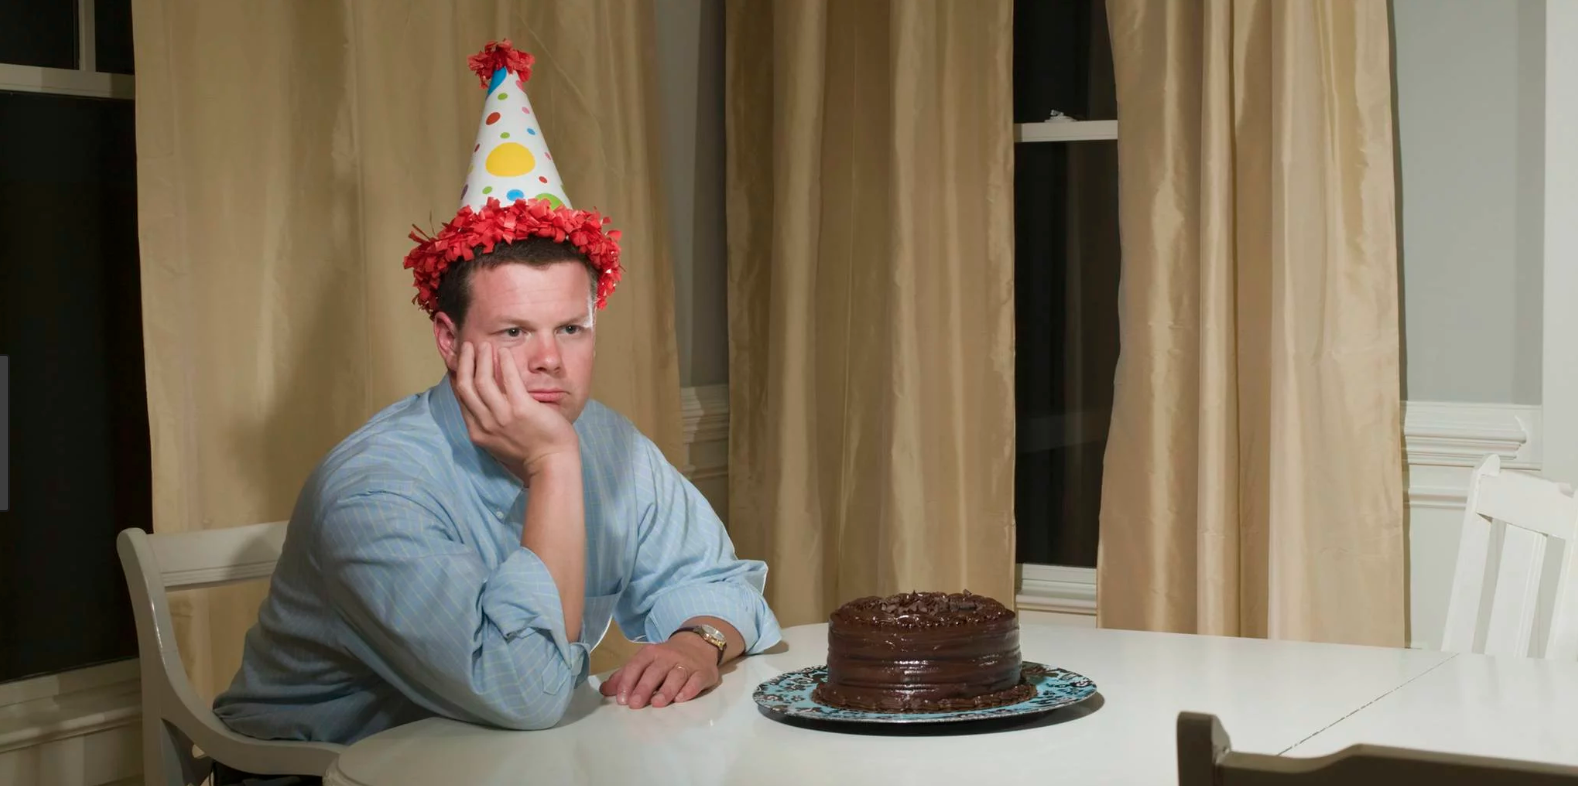 27 life lessons learned by my 27th birthday